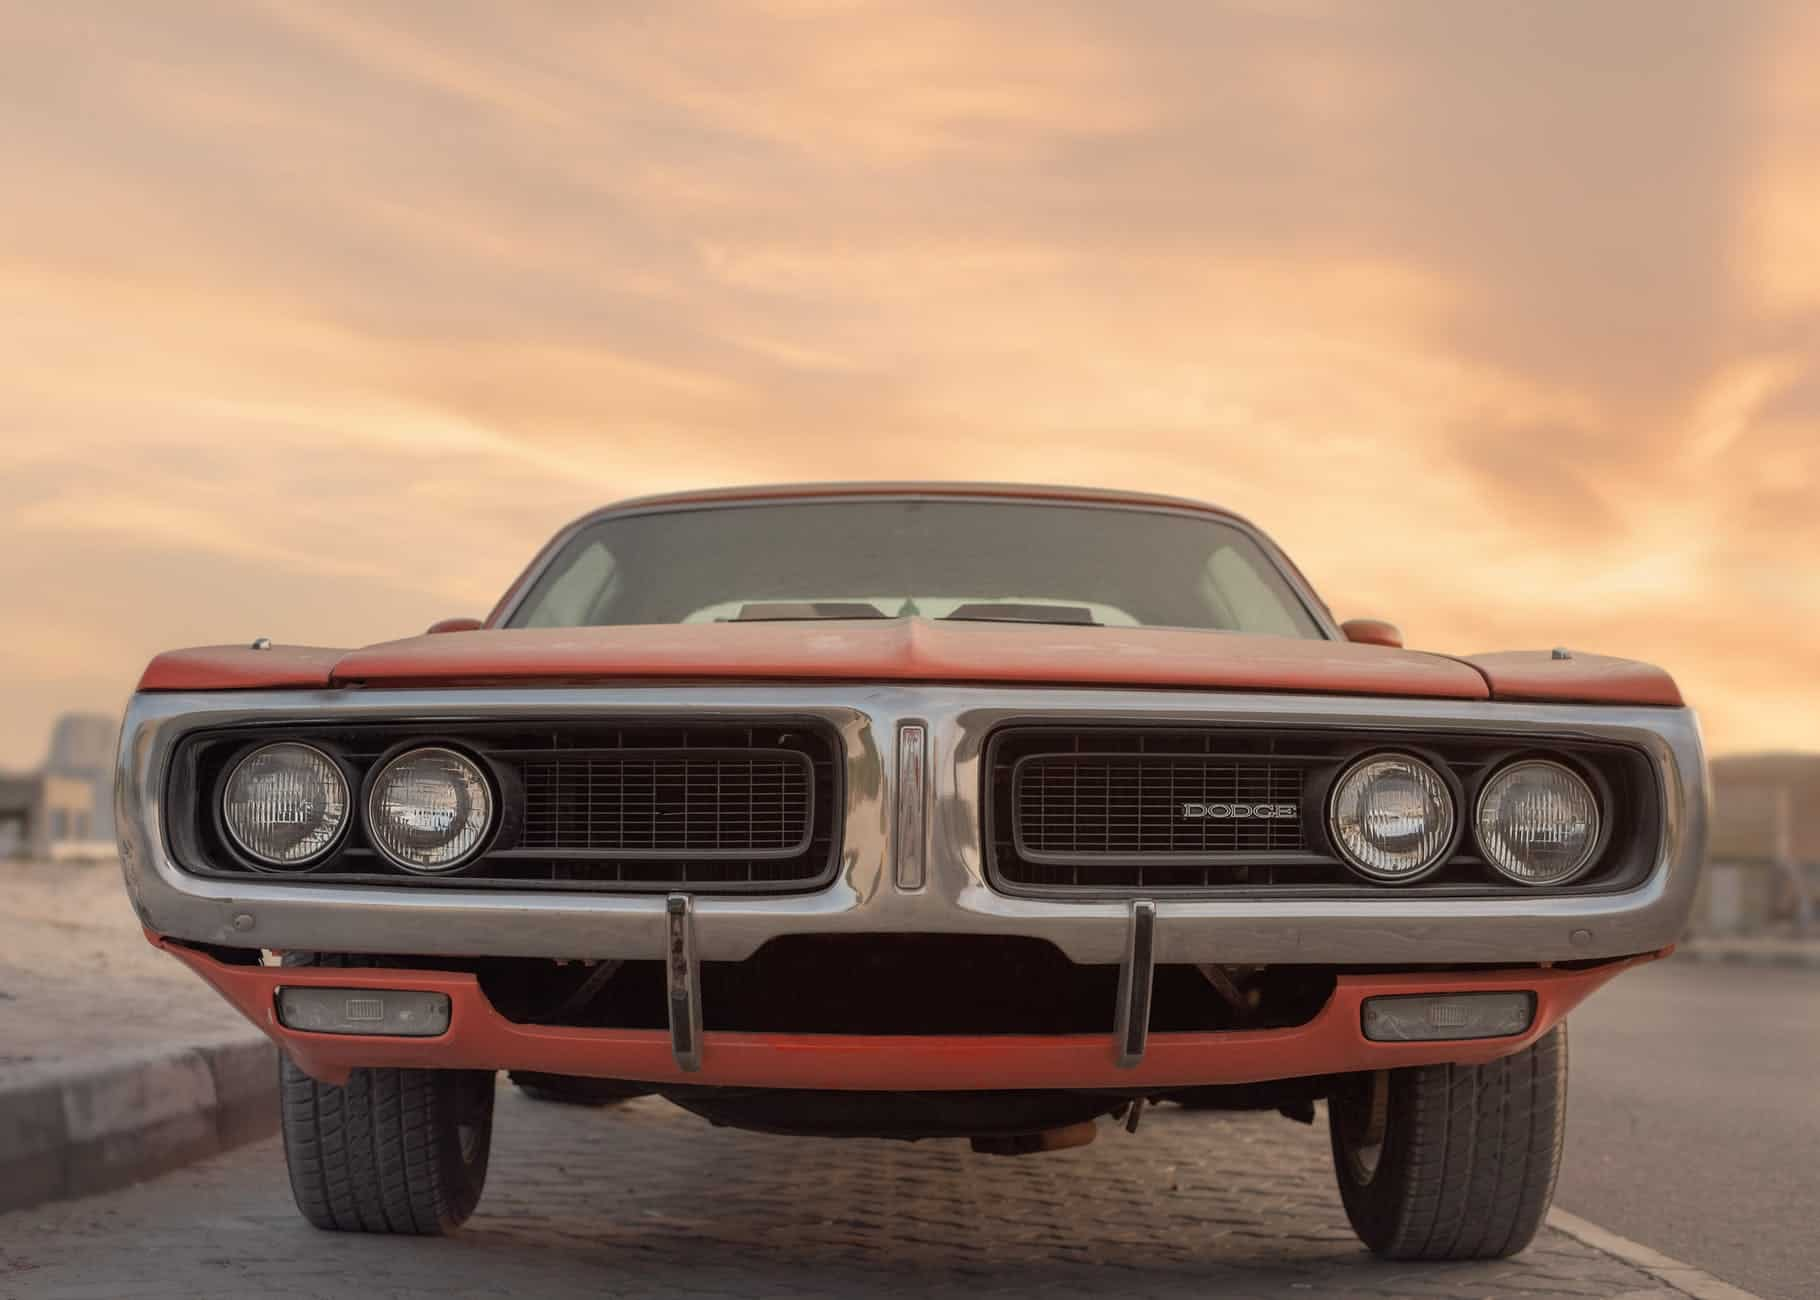 Cheap Muscle Cars: 3 Of The Best And How To Make Them Even Better!